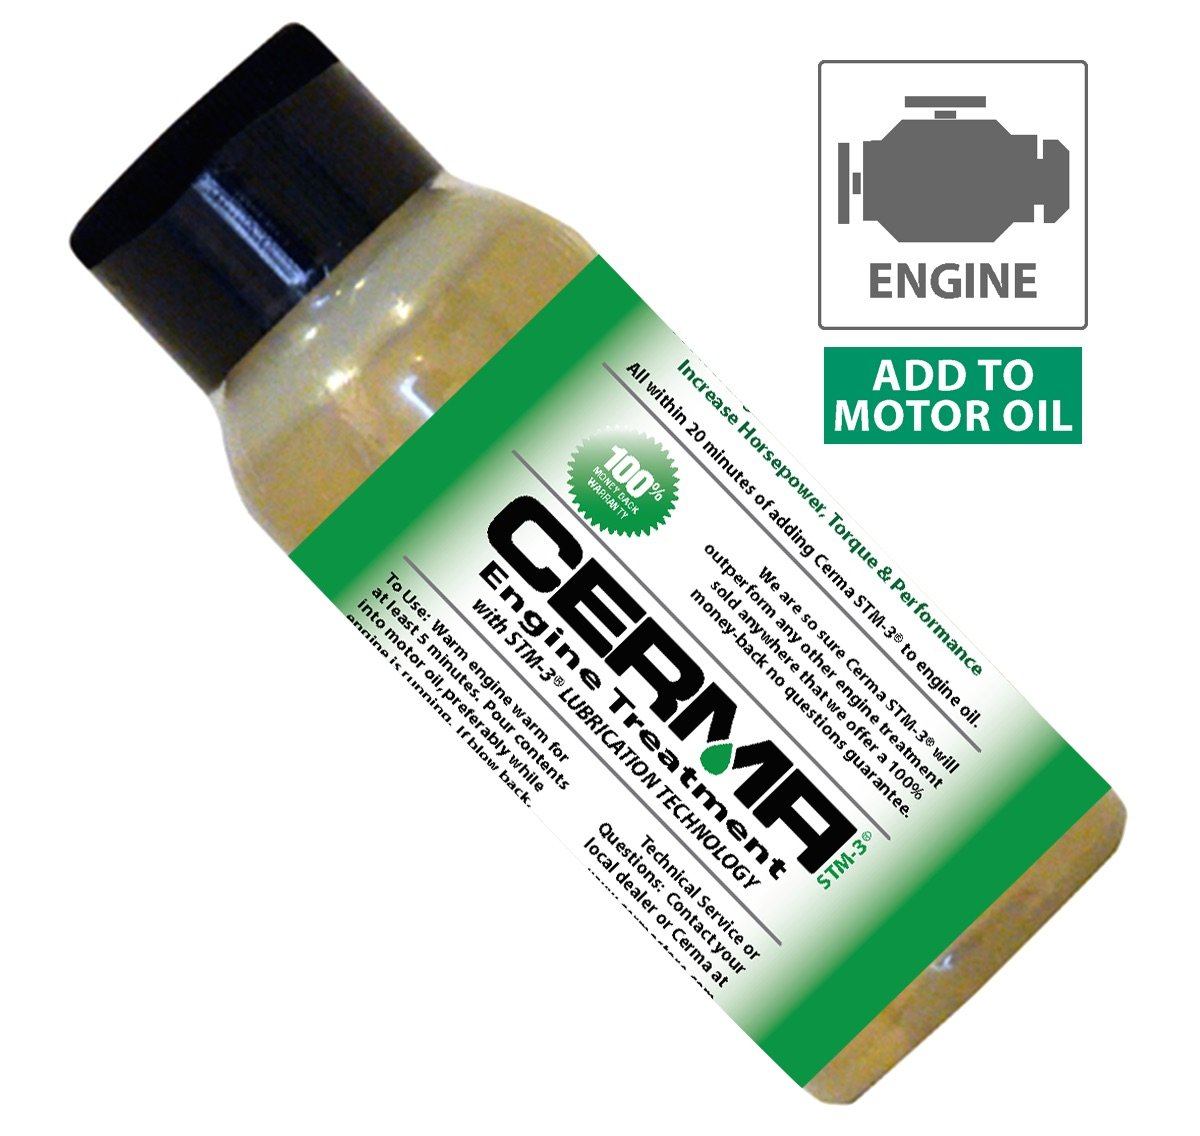 Cerma Gas Ceramic Engine Treatment 4 to 8 Cyl Cerma Treatment CE-1